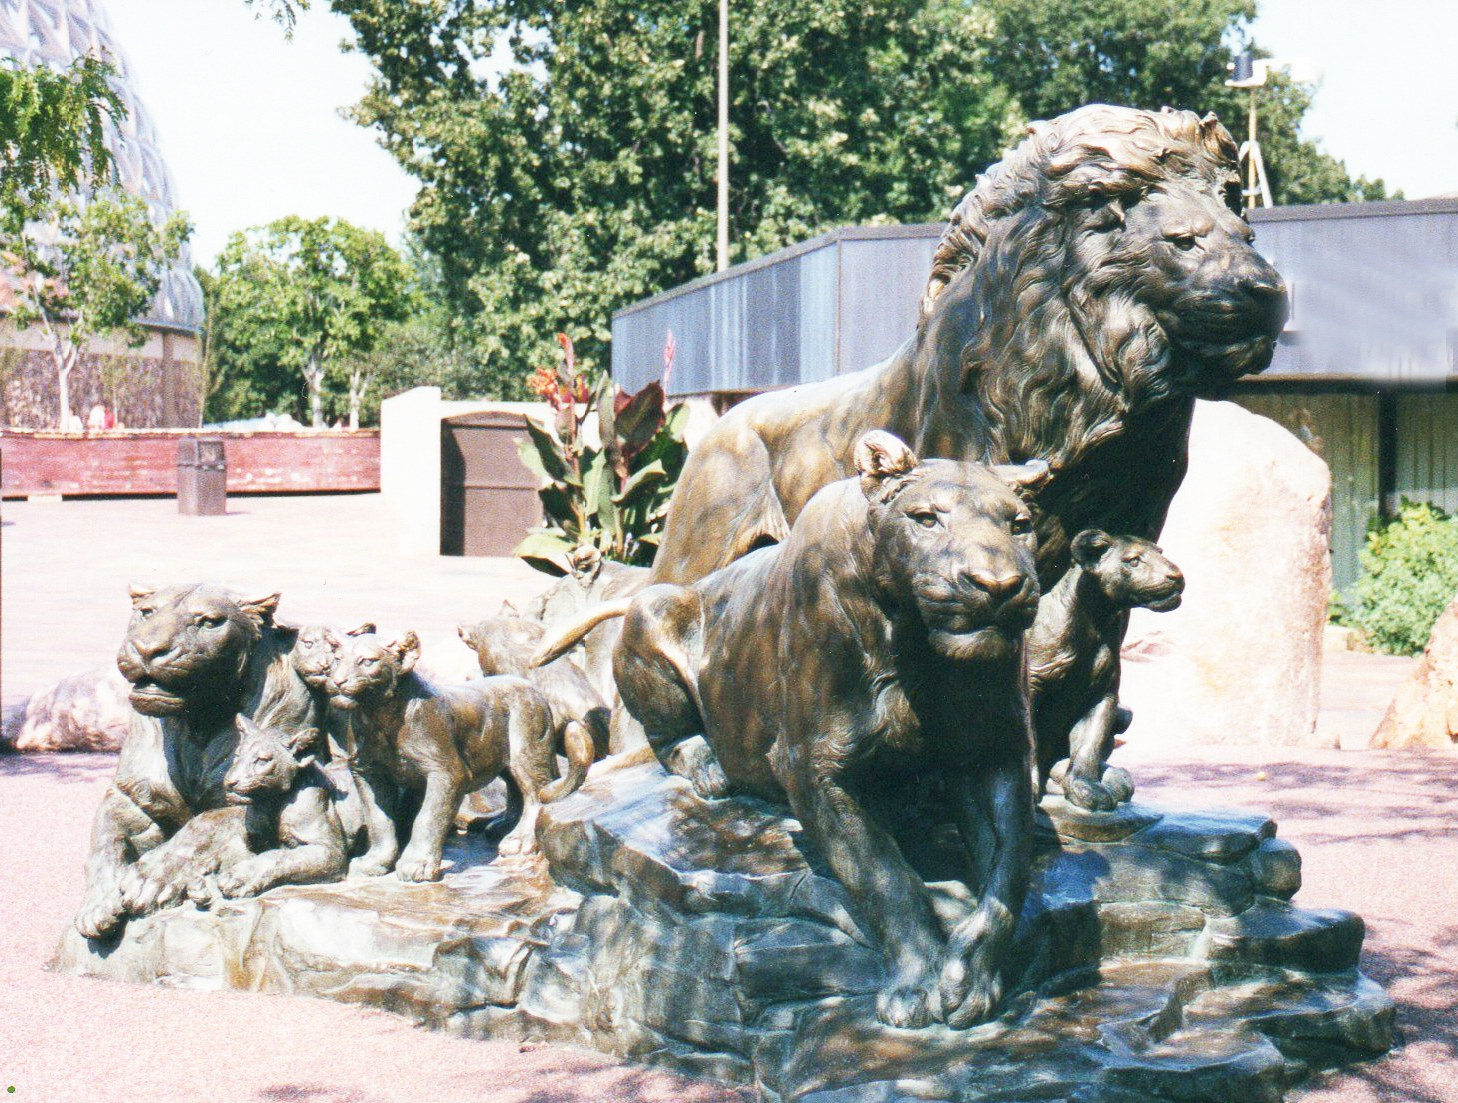 Sweet Family A Group of Large Outdoor Bronze Animal Sculptures Lions Statue